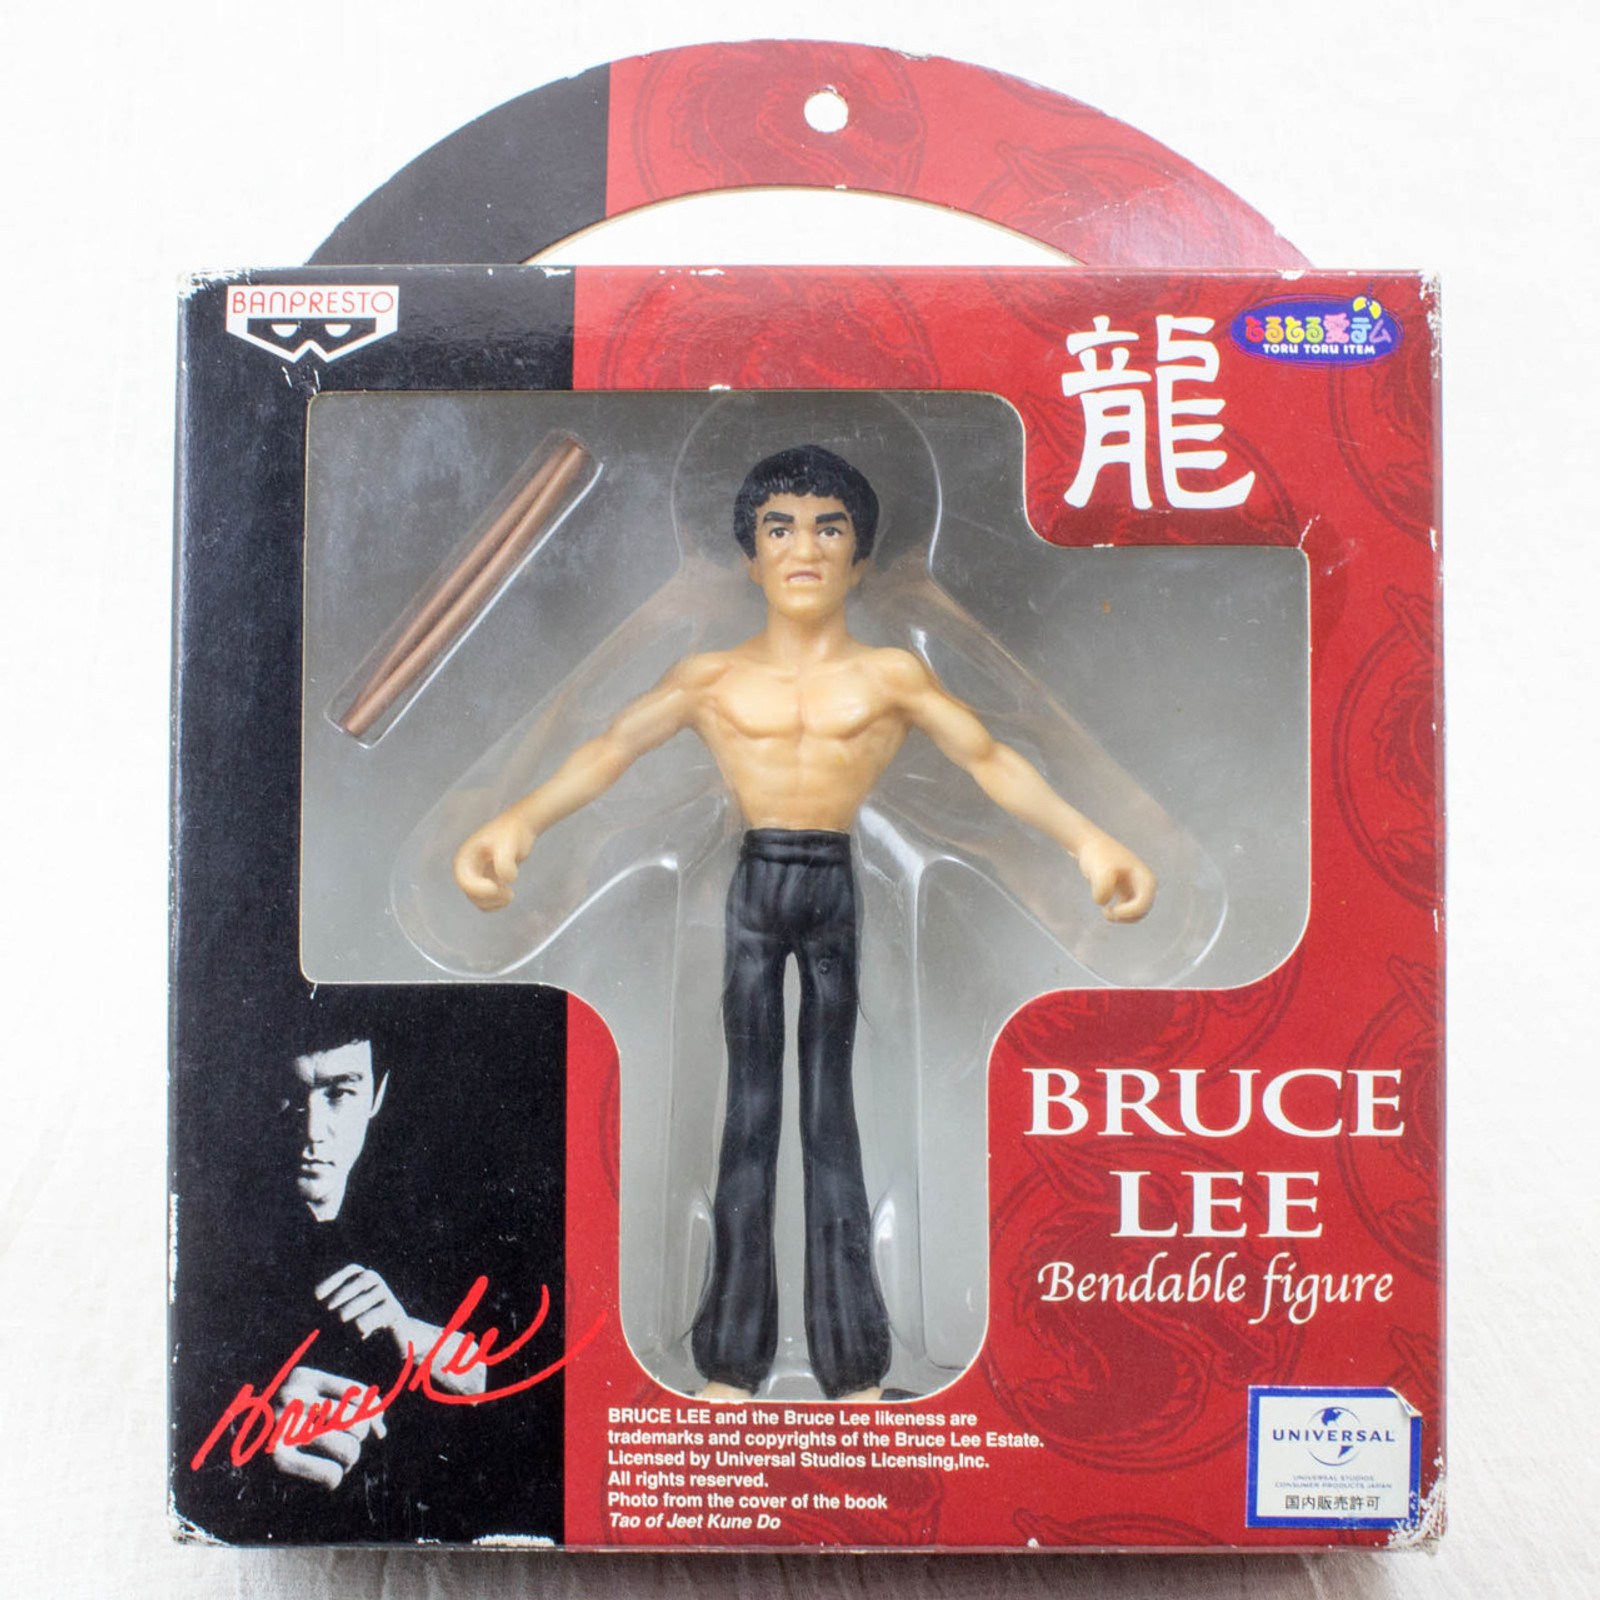 BRUCE LEE Bendable figure Banpresto JAPAN KUNG FU MOVIE ENTER THE DRAGON